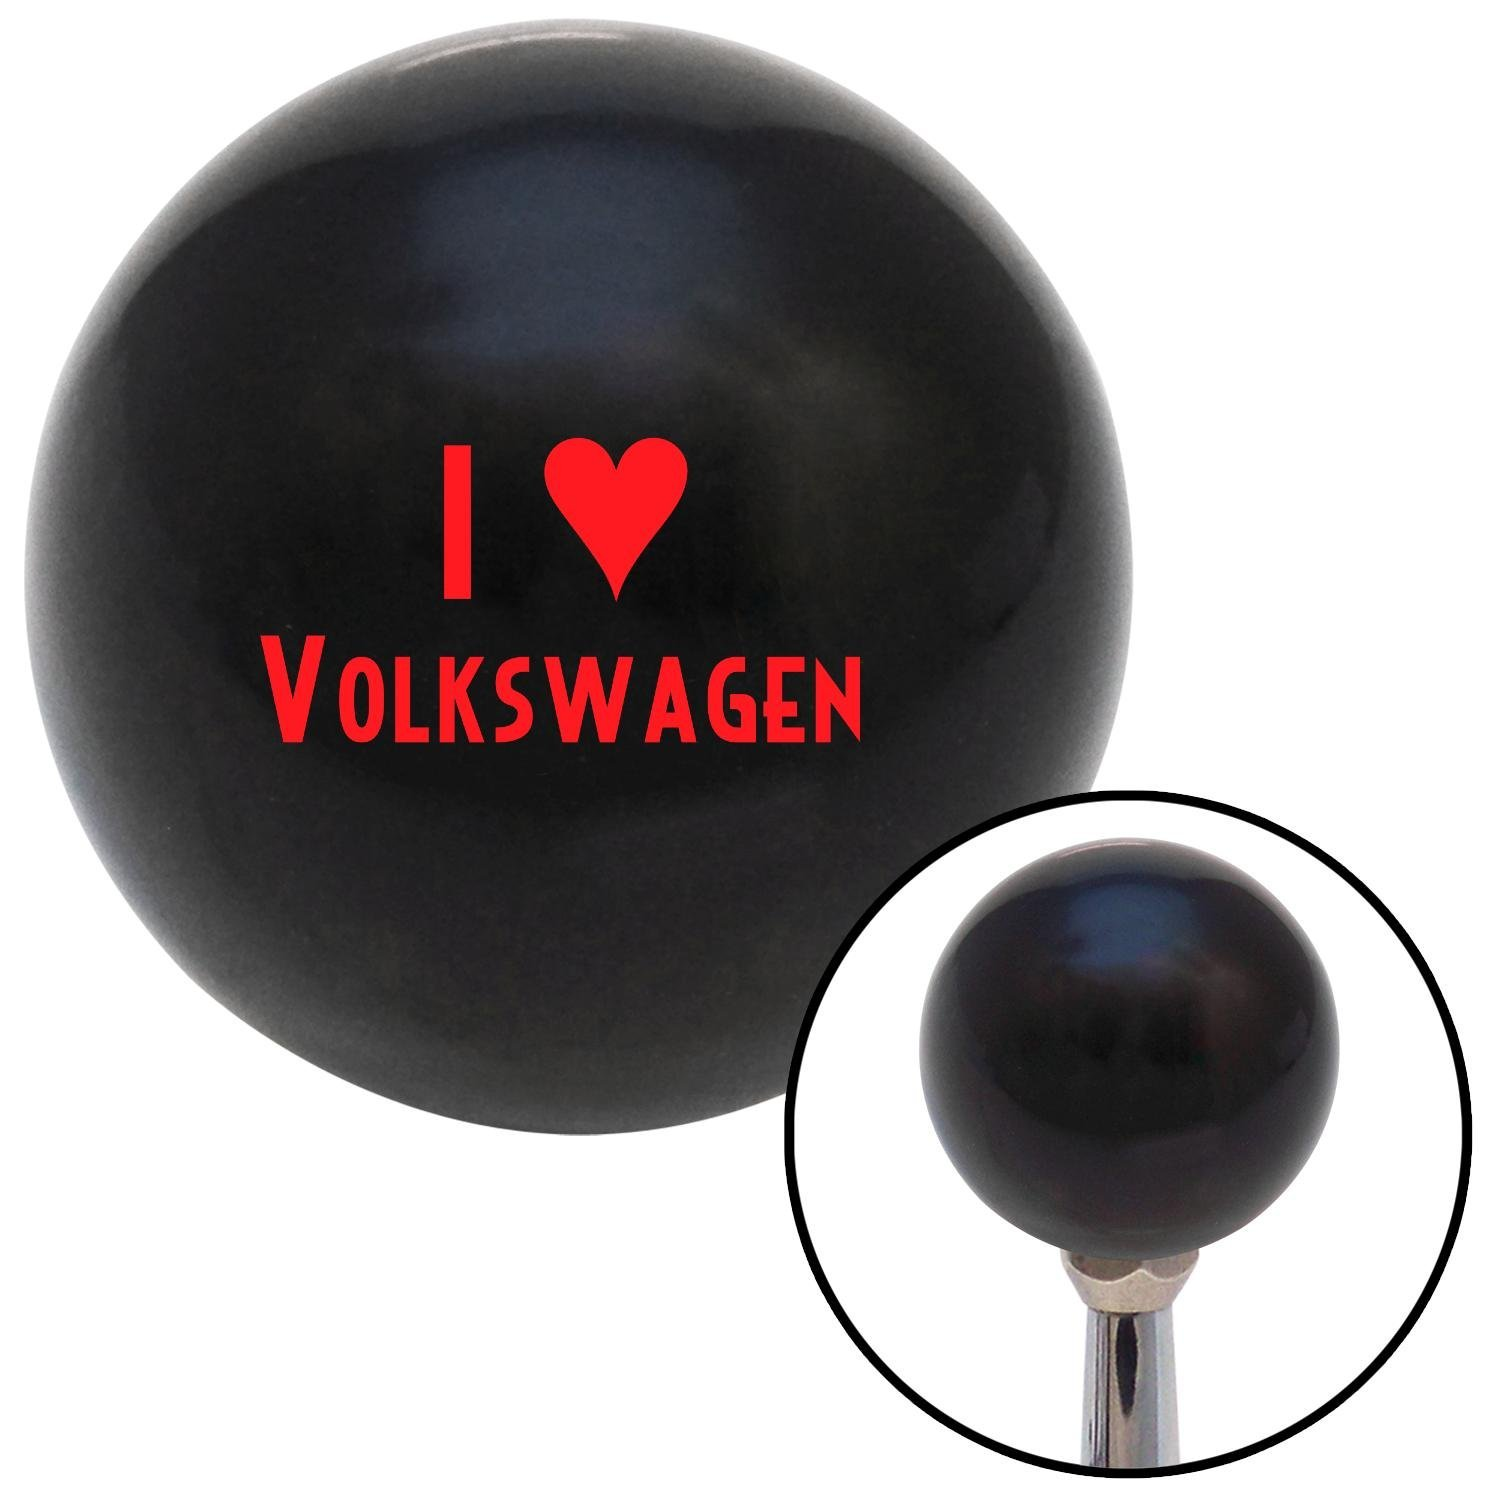 Red I 3 Volkswagen American Shifter 105835 Black Shift Knob with M16 x 1.5 Insert